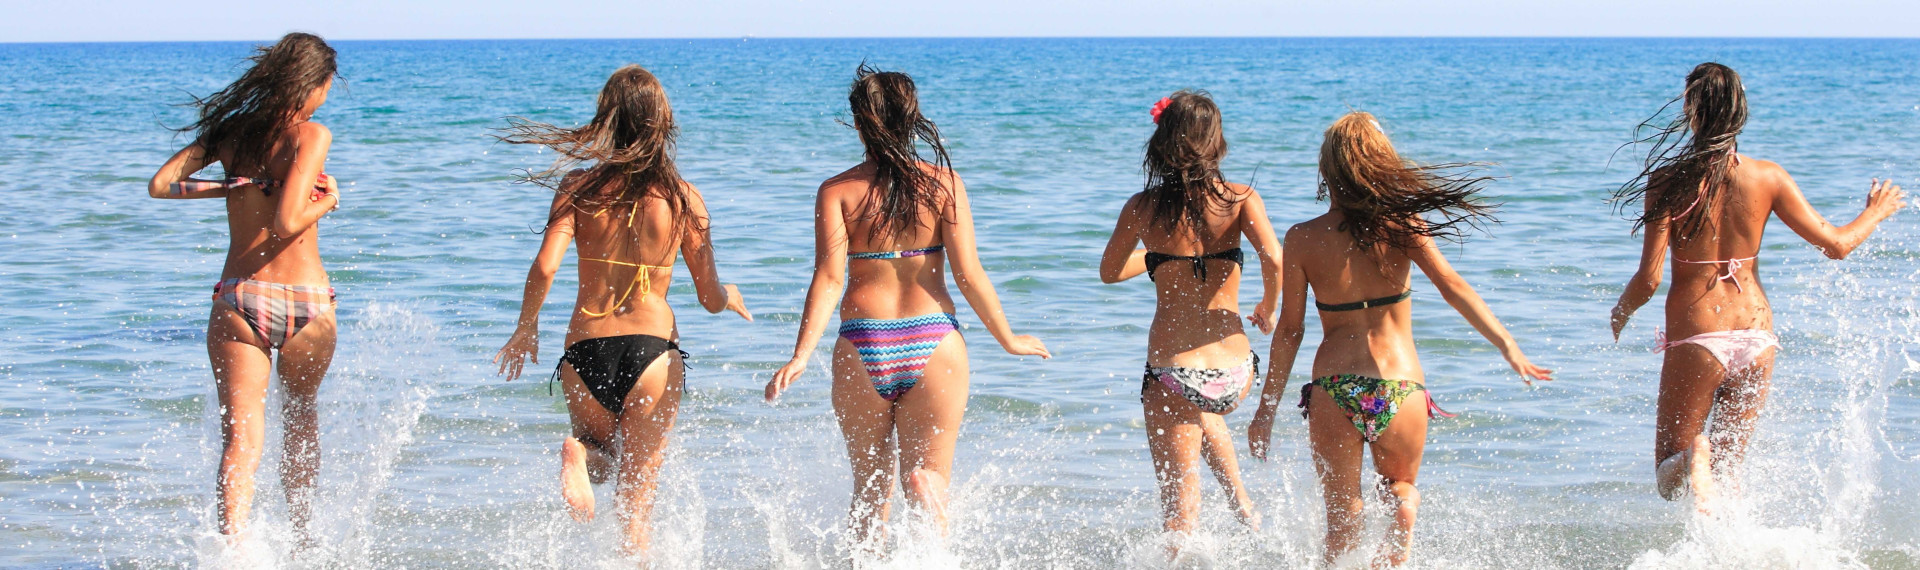 6 hot girls in the water by the beach